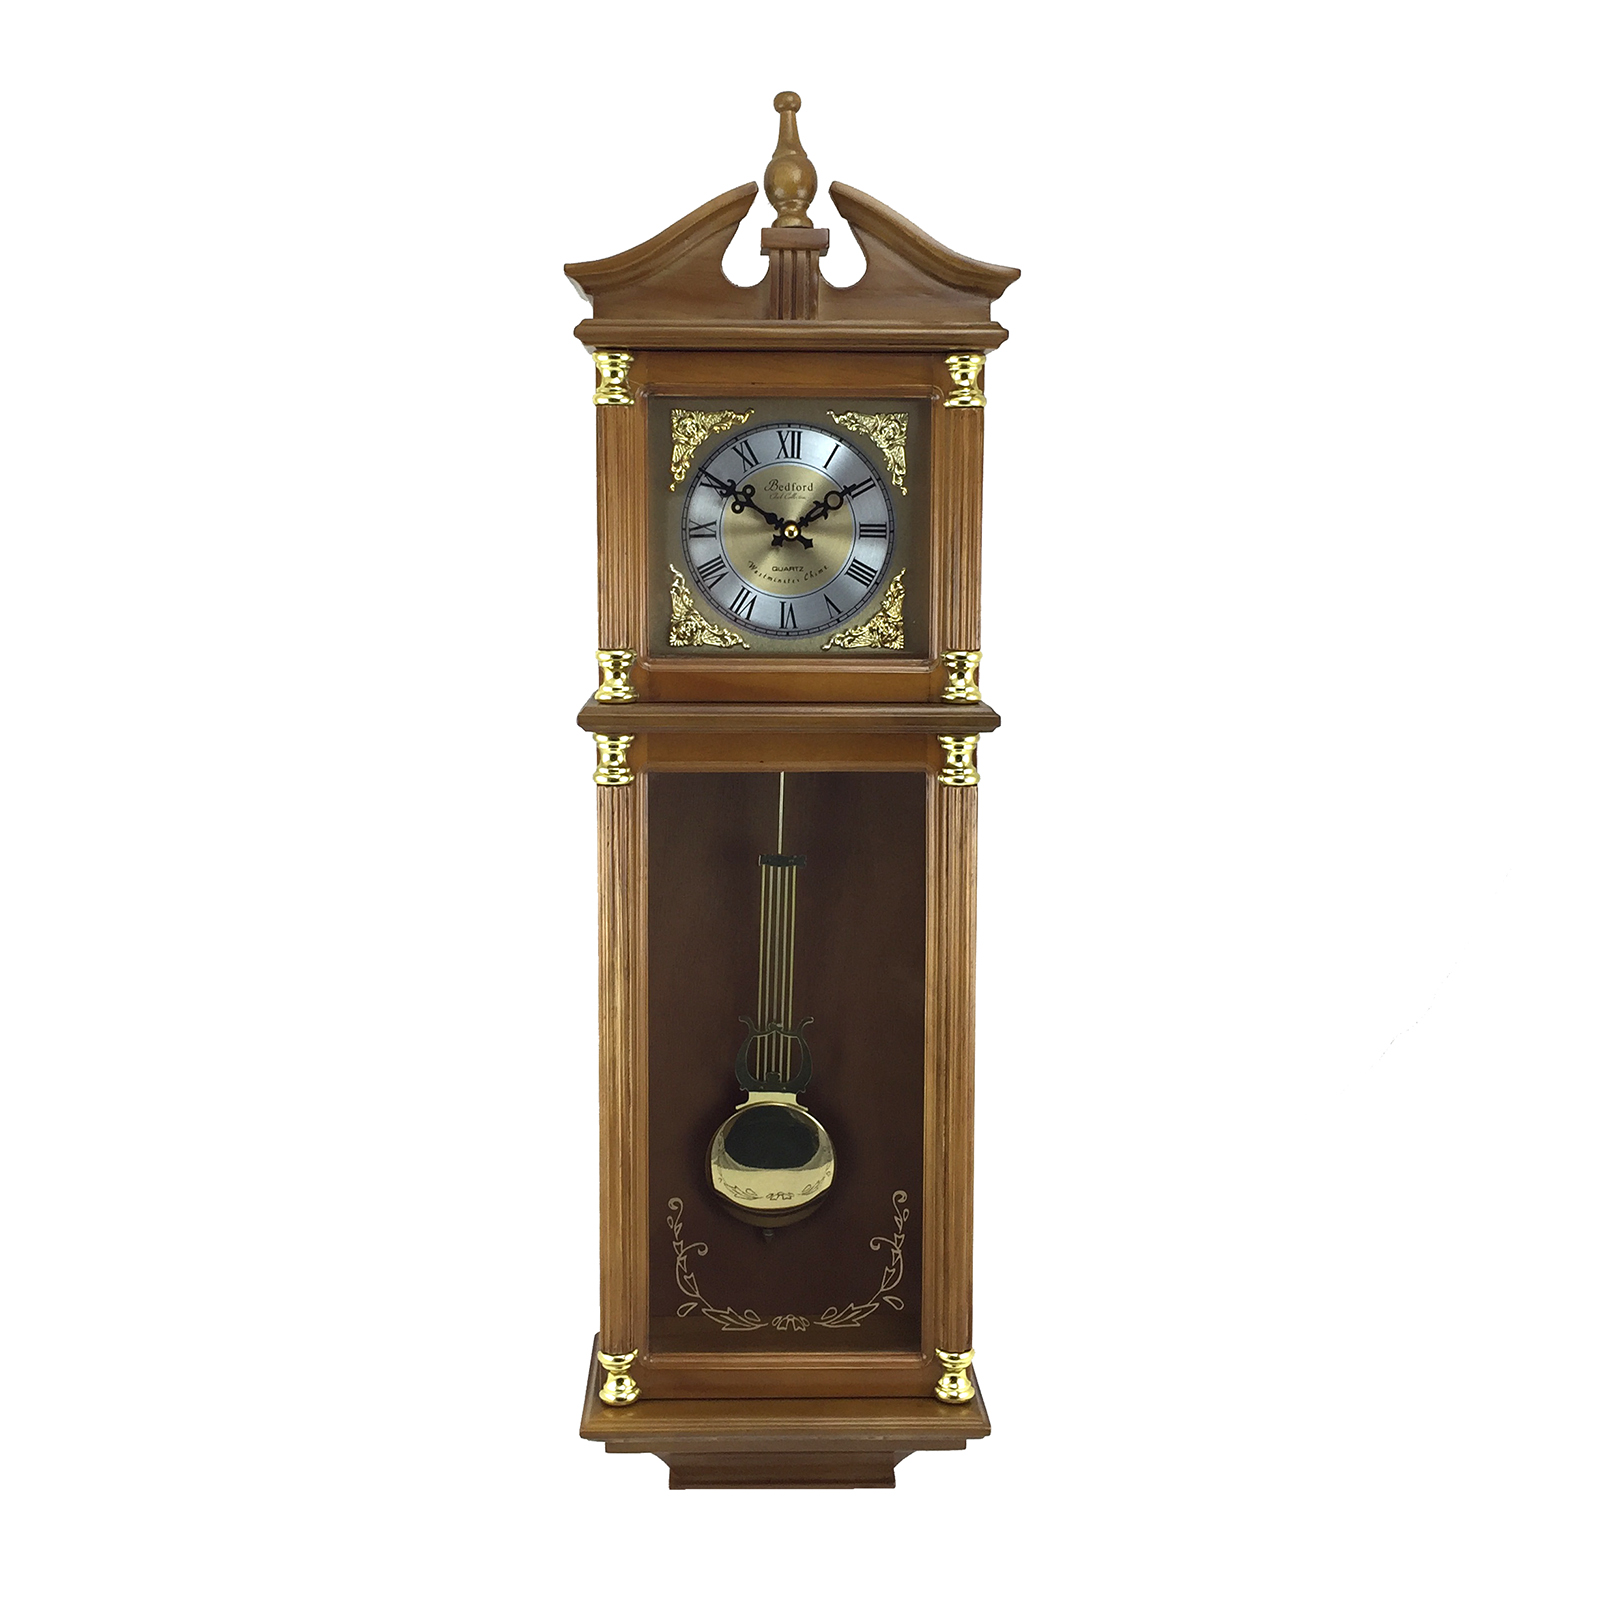 "Bedford Clock Collection 34.5"" Antique Chiming Wall Clock with Roman Numerals in a... by Bedford Clock Collection"